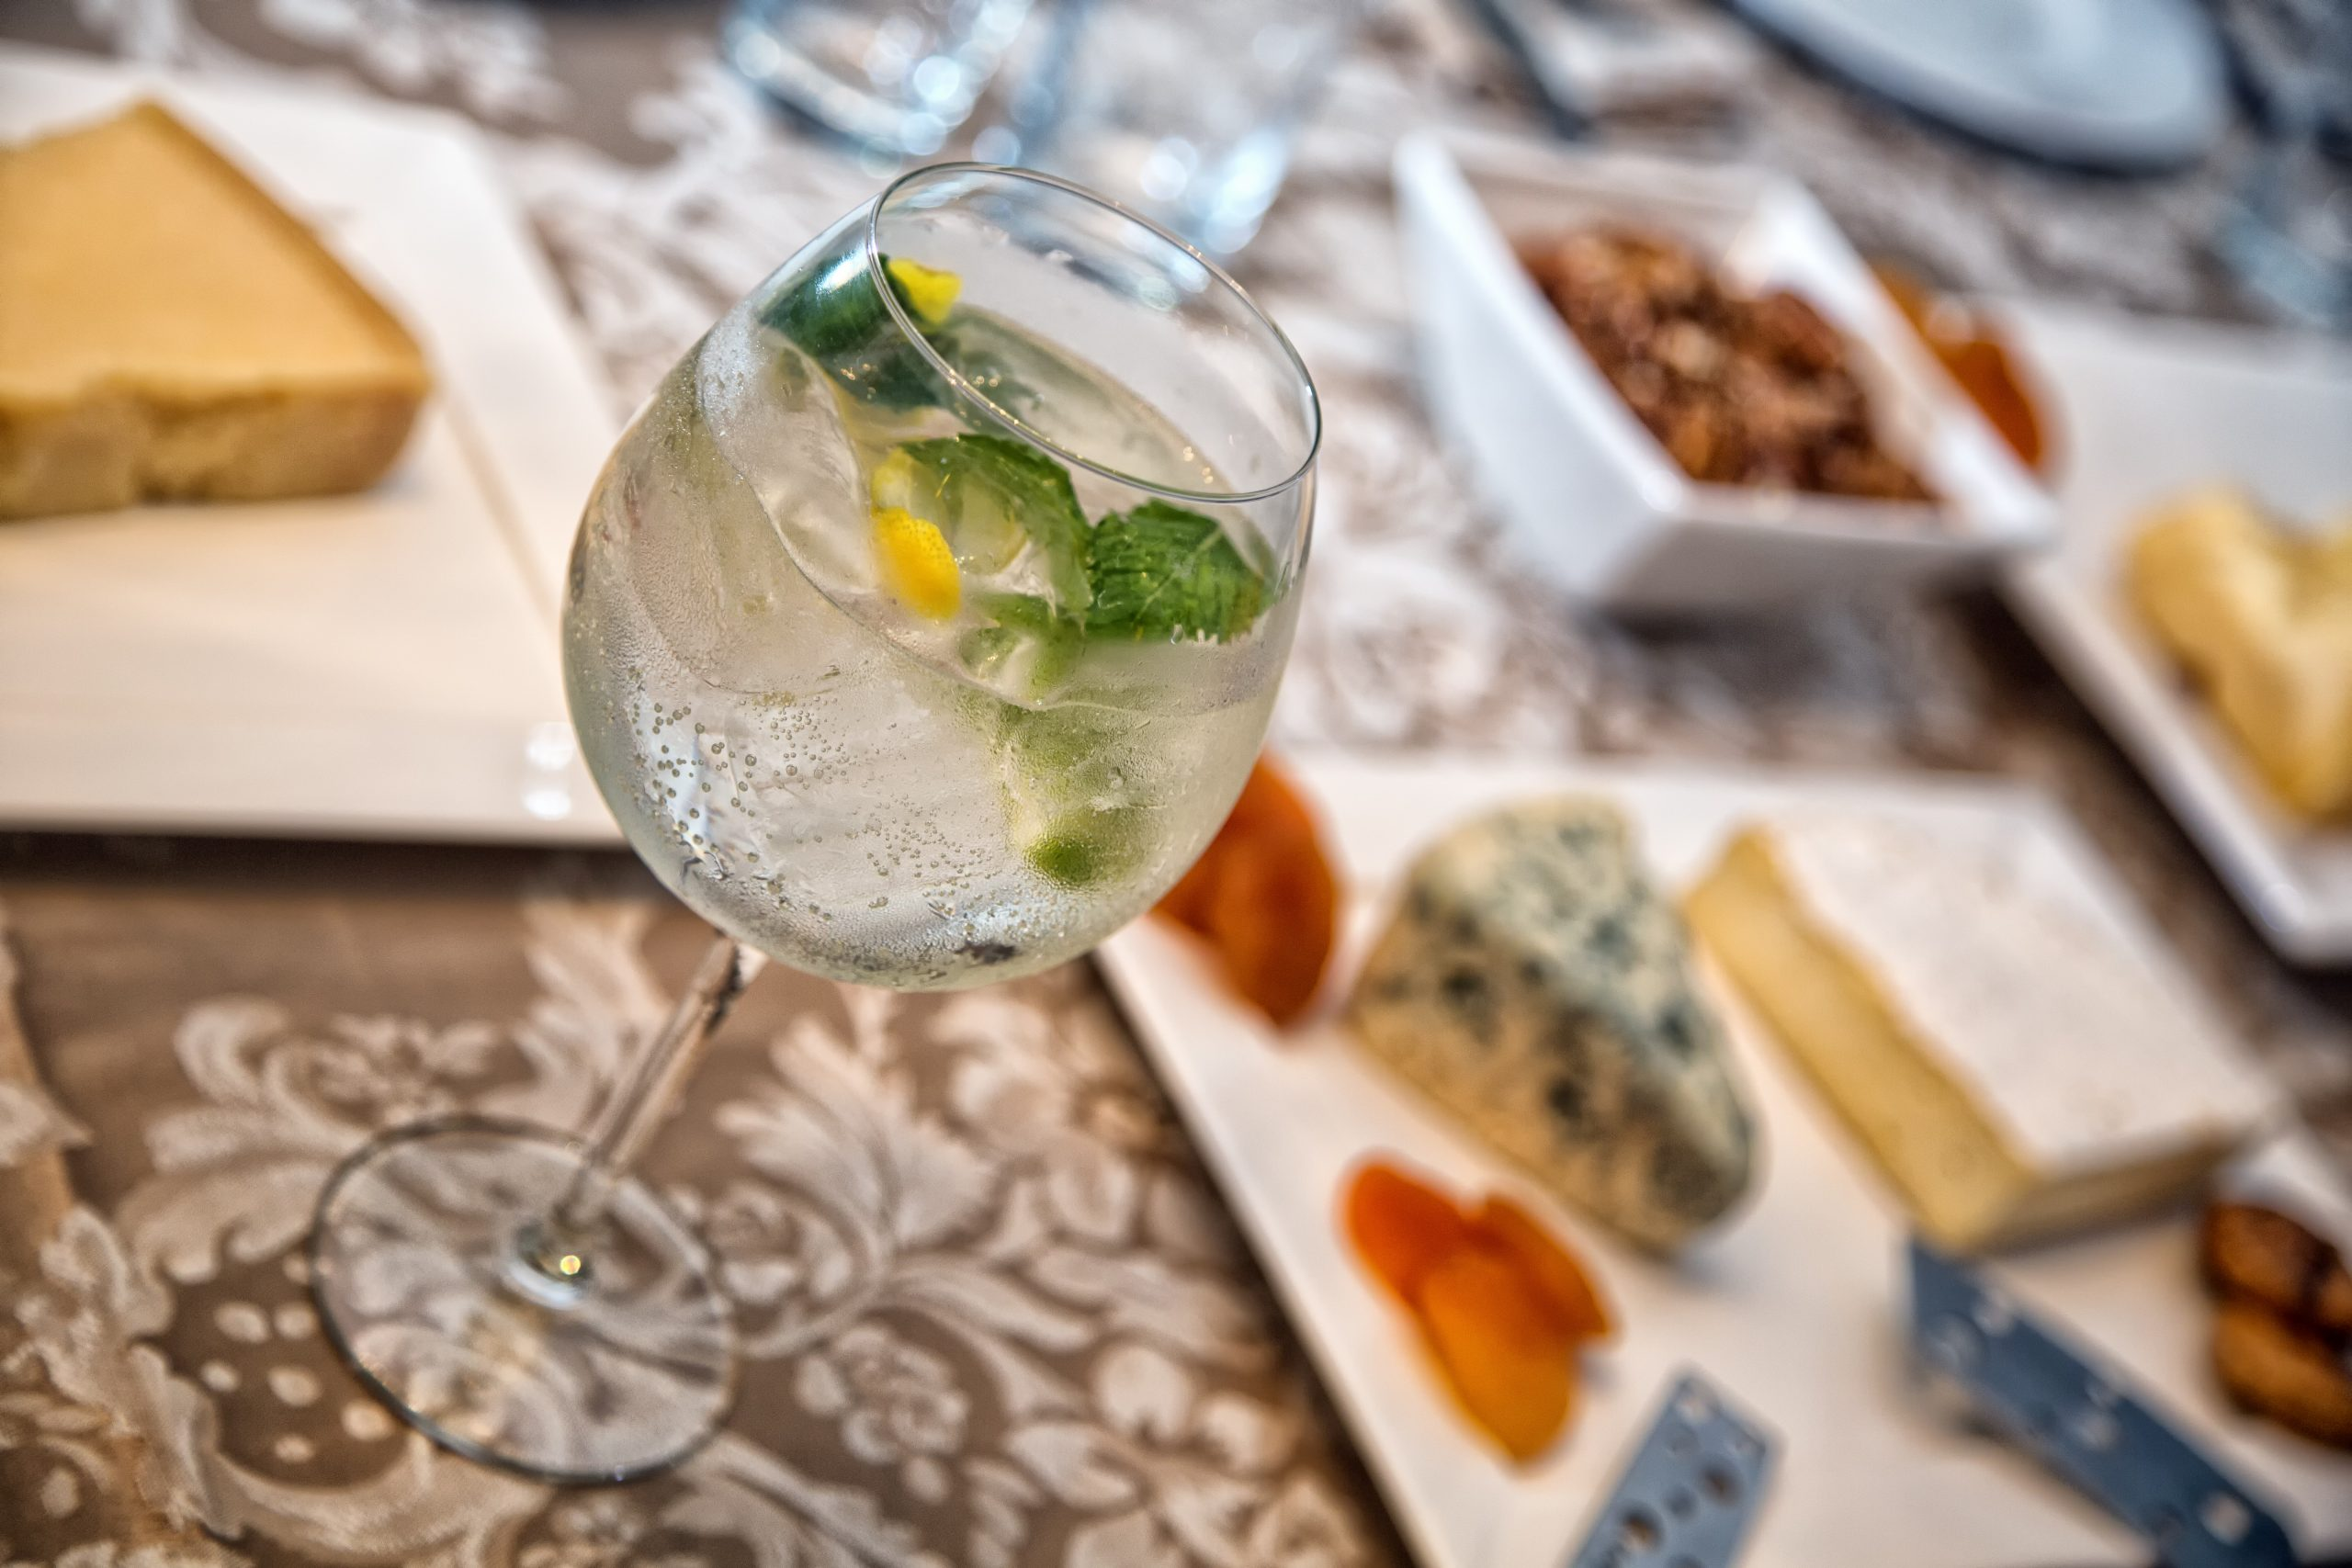 8 Best Foods to Pair with Your Bowling & Burch Gin